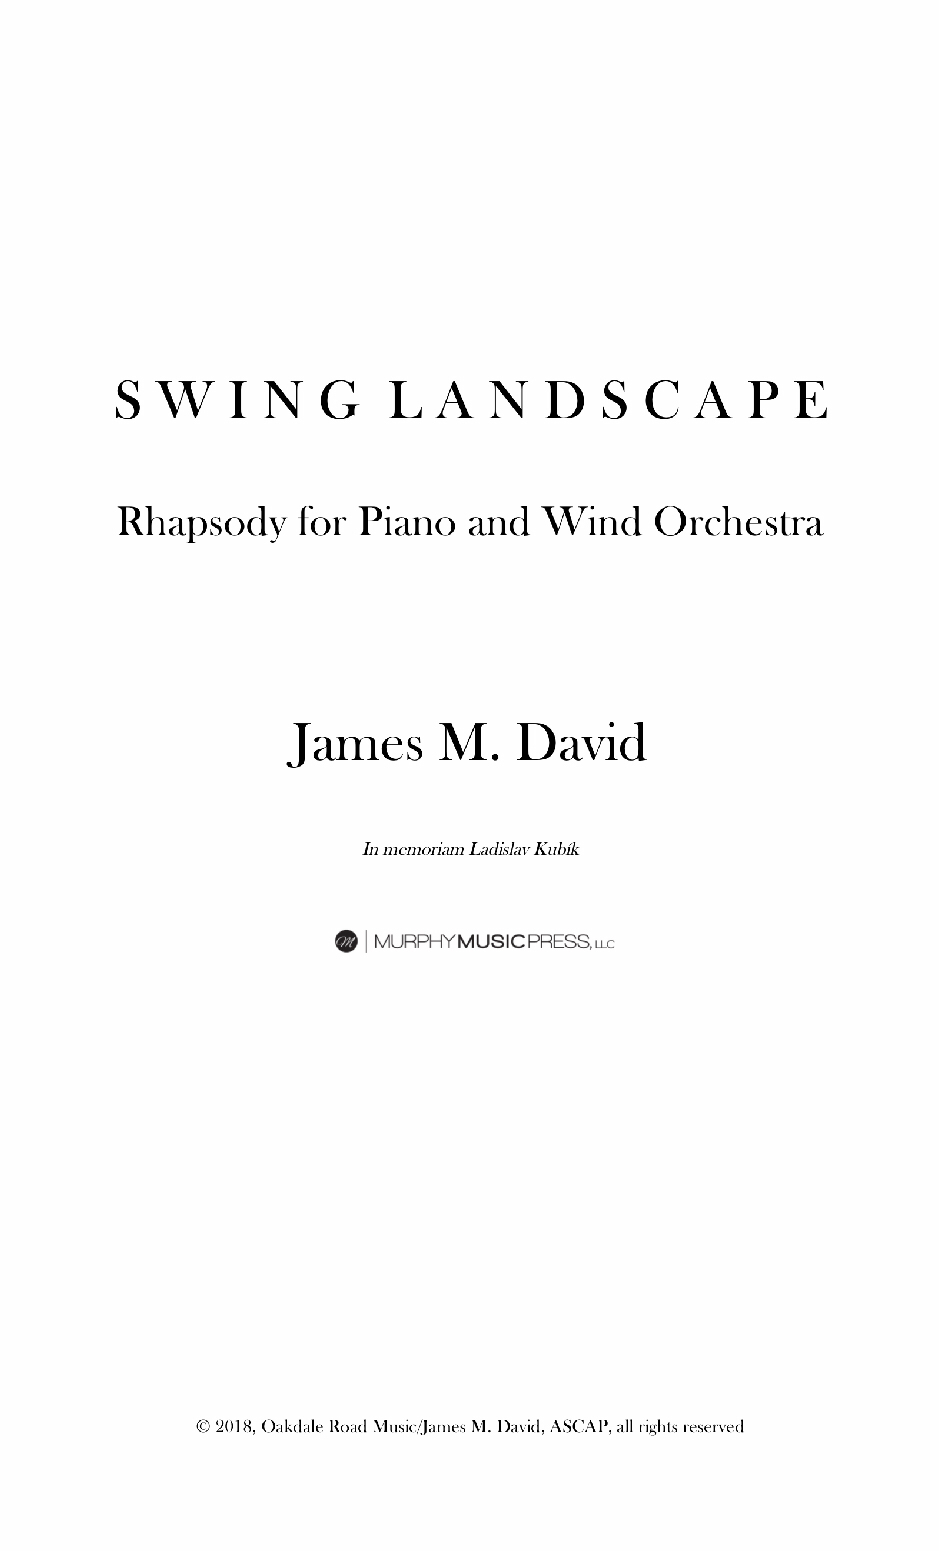 Swing Landscape by James David